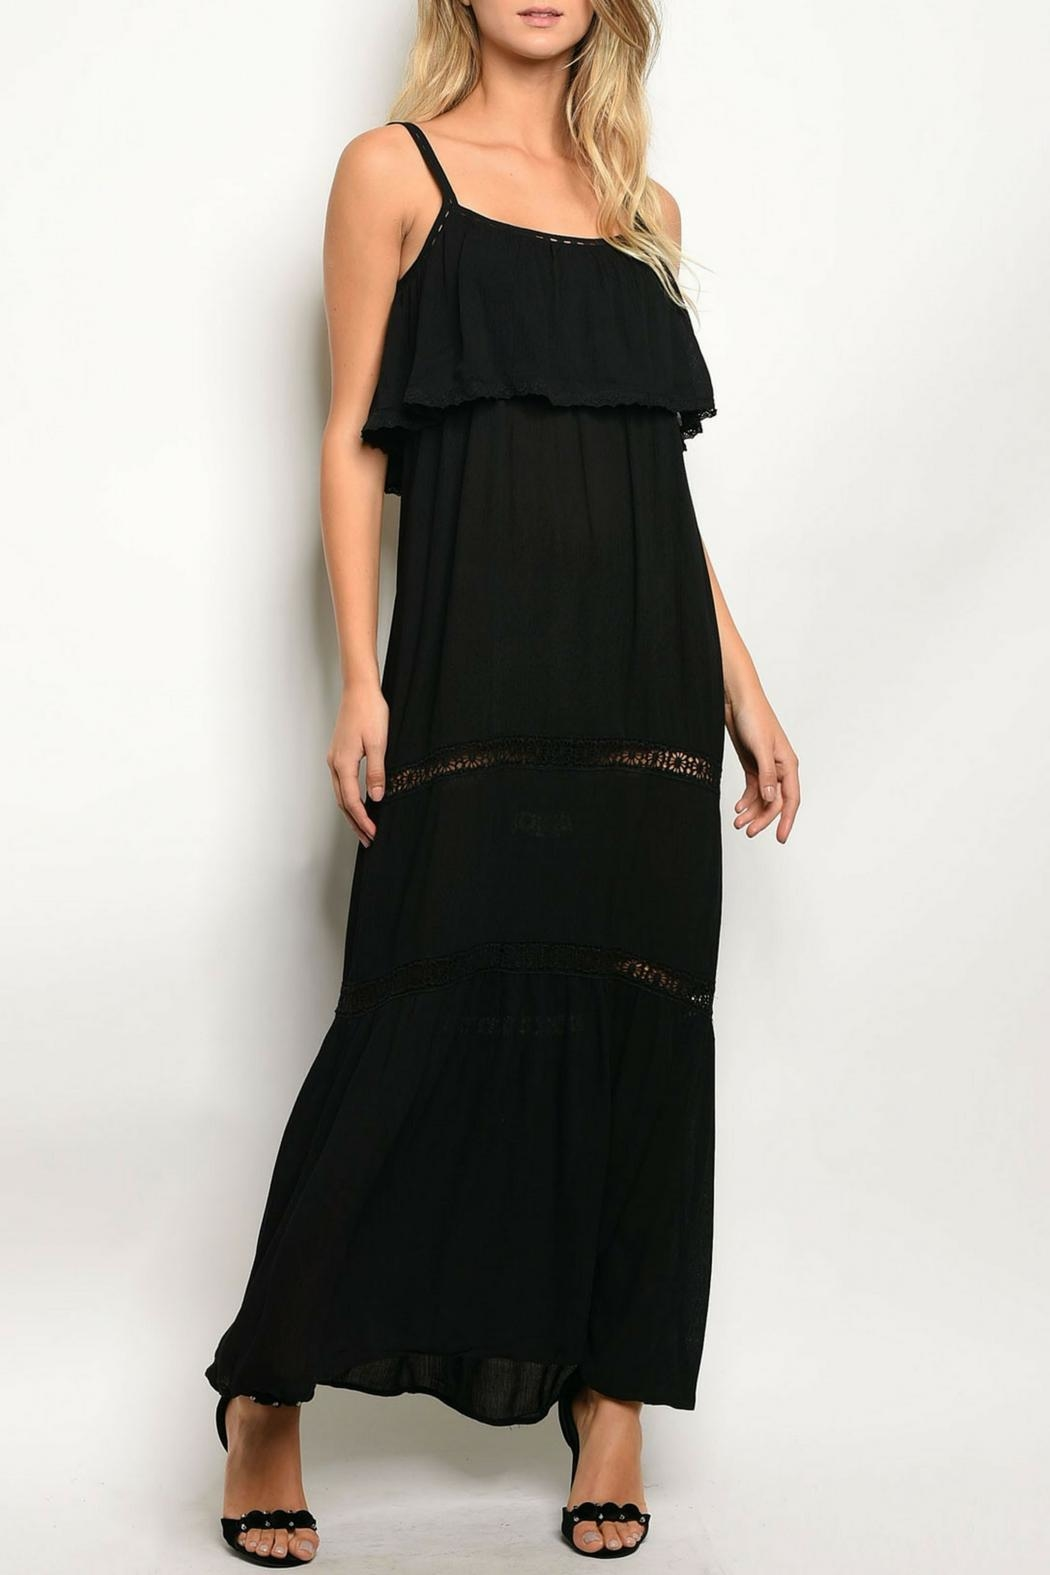 Solemio Black Ruffle Dress - Front Cropped Image